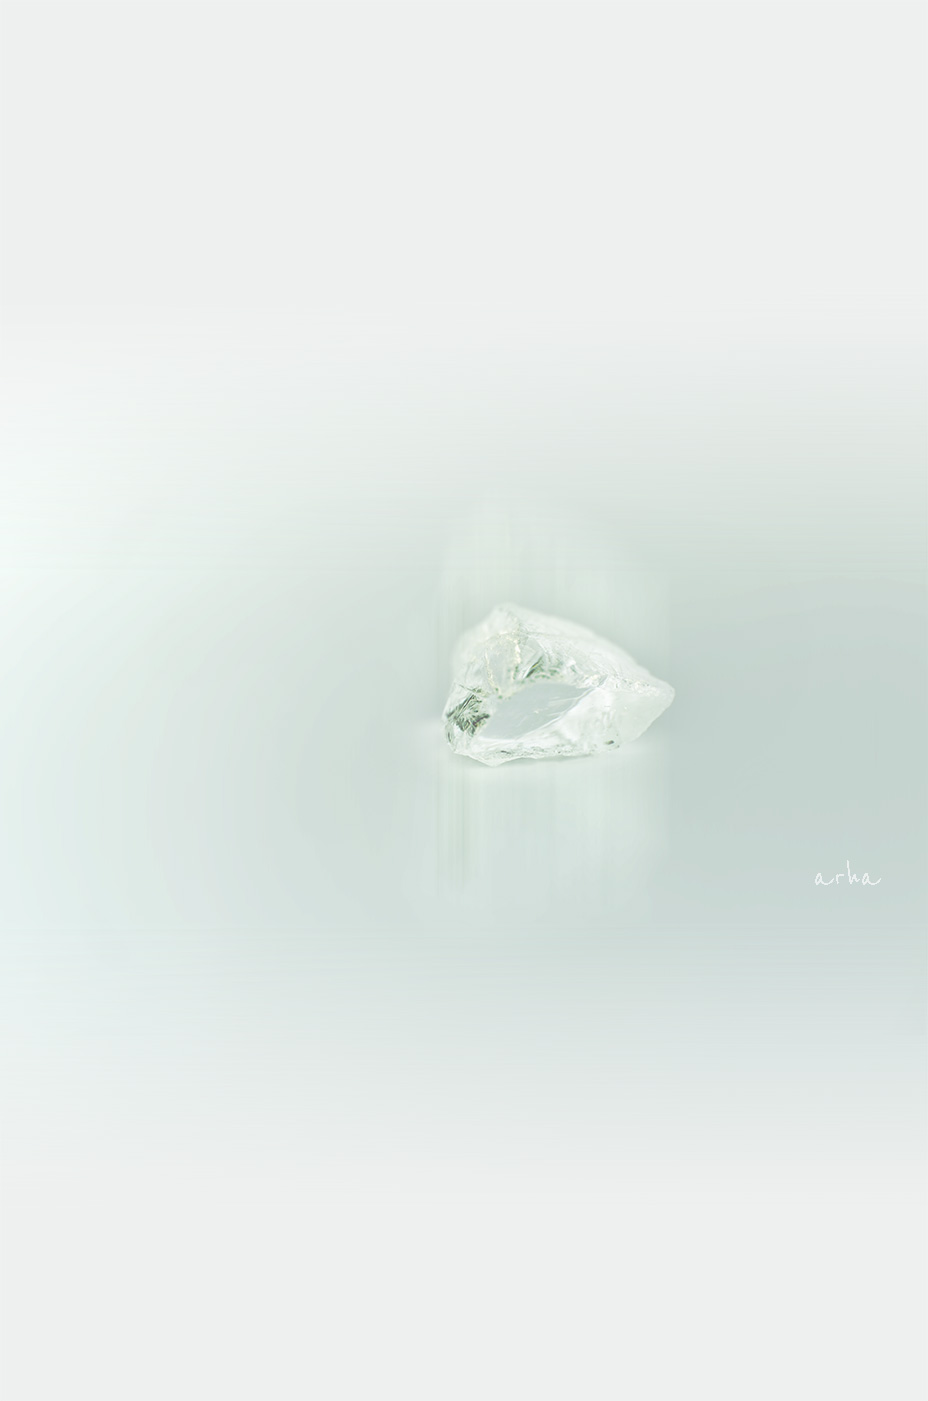 stay-with-minimalism-copyright-2012-arha-Tomomichi-Morifuji